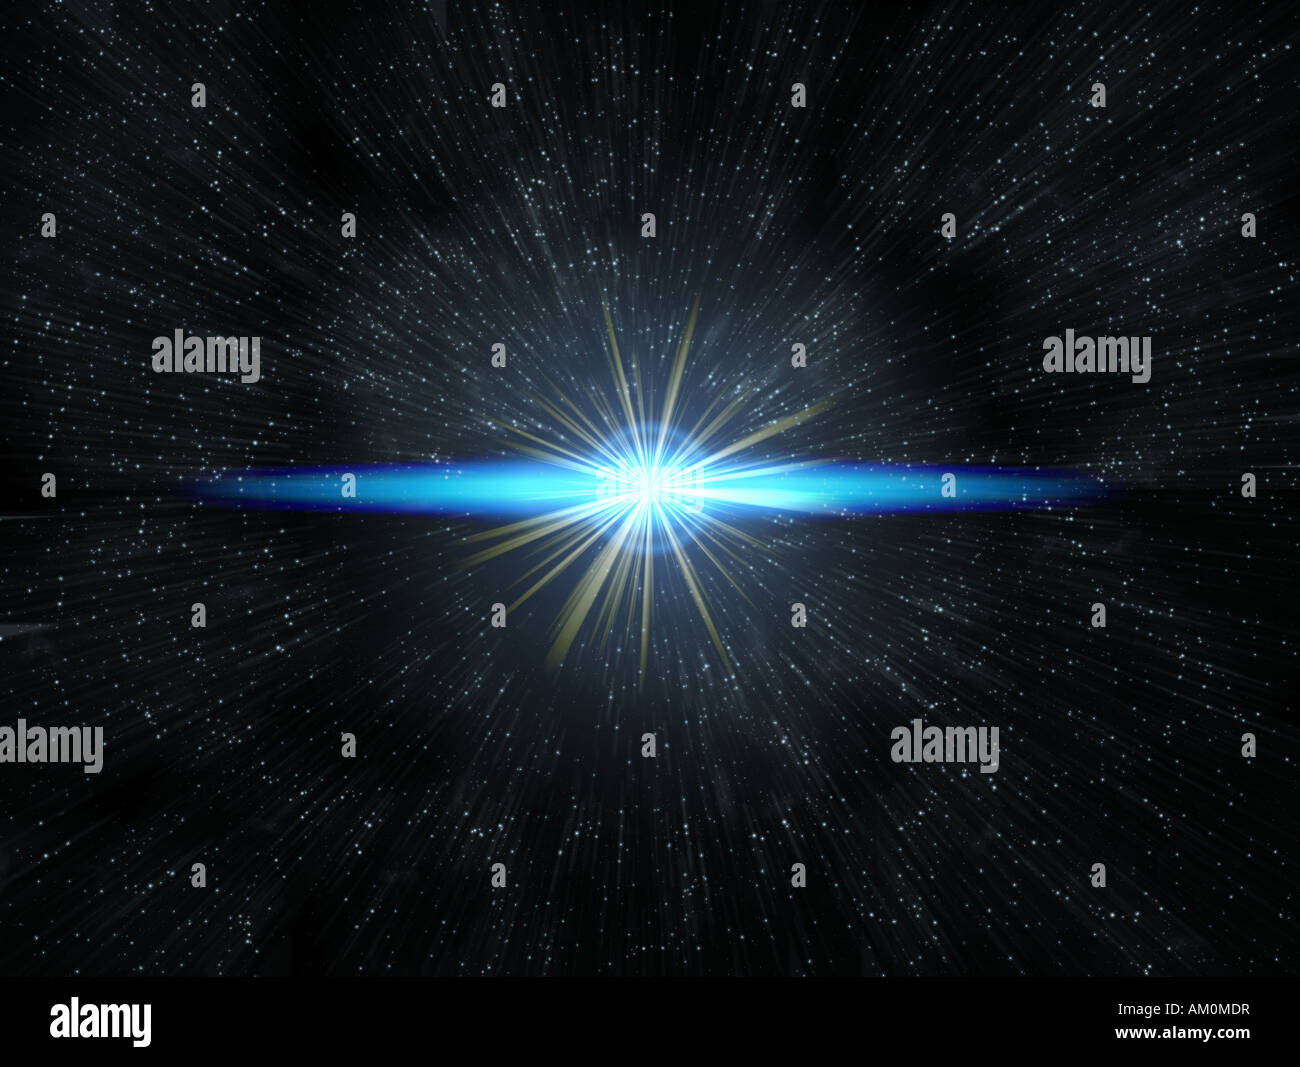 shining star flare on exploding in space - Stock Image